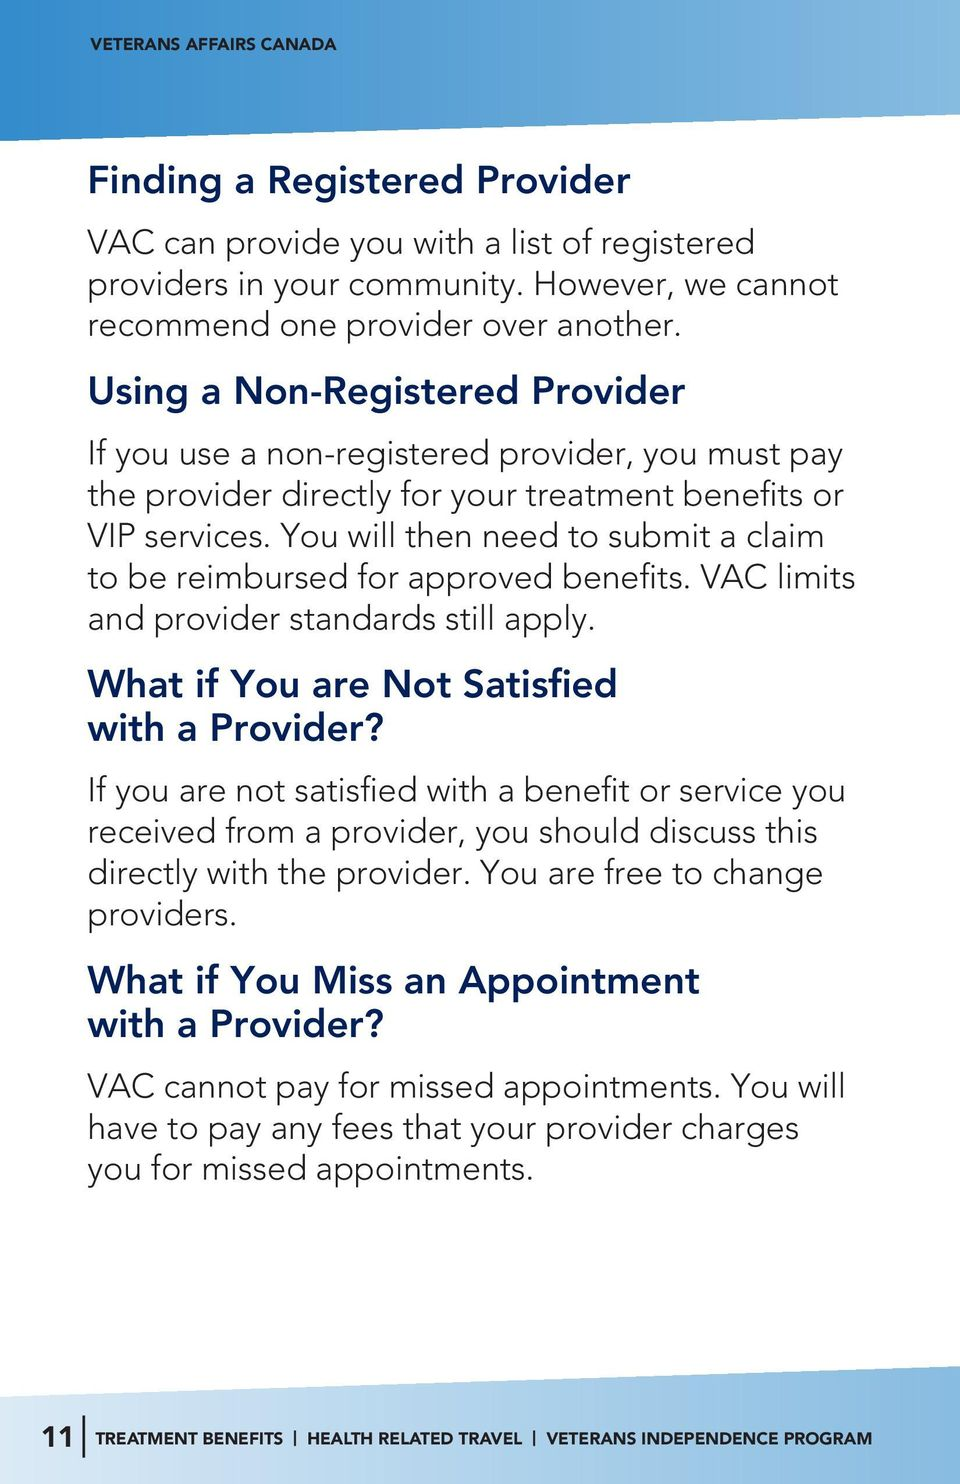 You will then need to submit a claim to be reimbursed for approved benefits. VAC limits and provider standards still apply. What if You are Not Satisfied with a Provider?